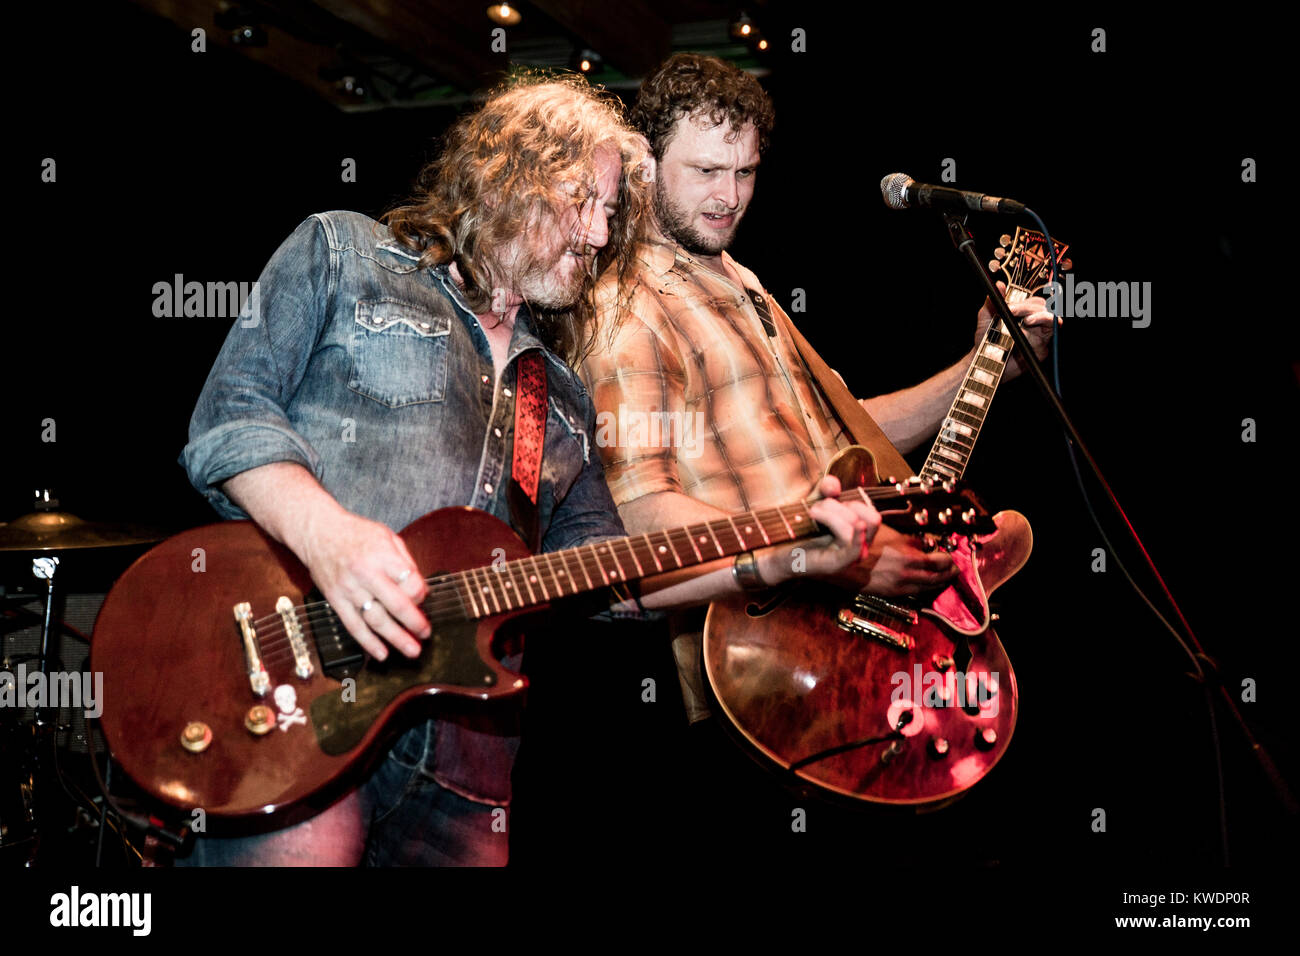 Barcelona, Spain. October 27, 2017. Concert by Leadfinger in Marula Café. Organized by A Wamba Buluba. Photographer: - Stock Image